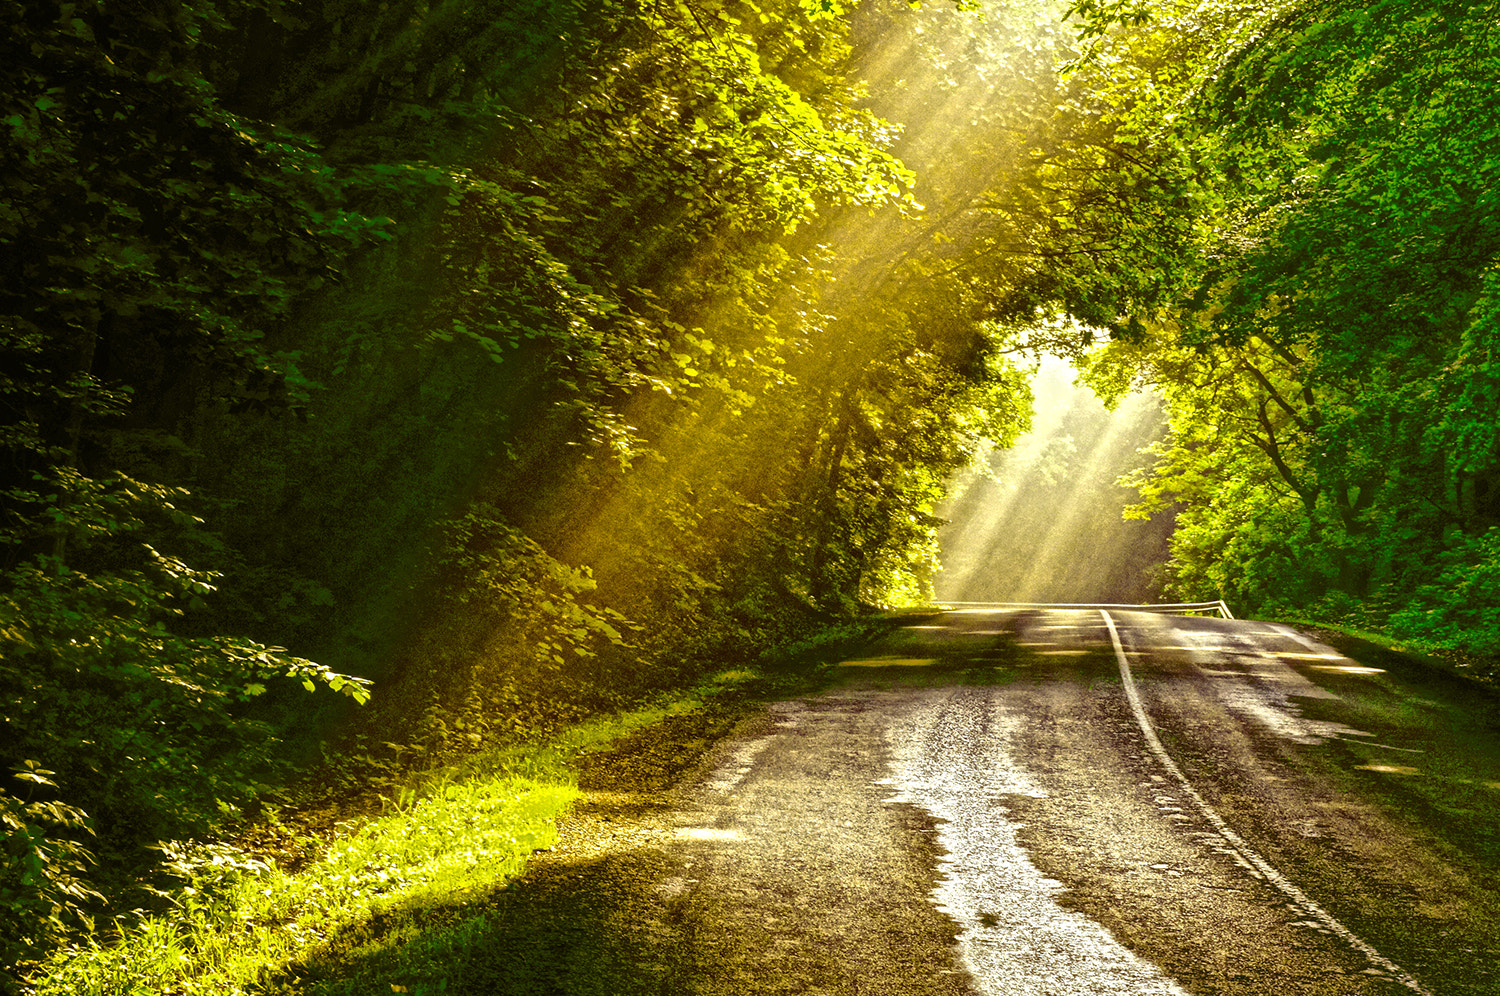 Photograph lights the road by Andy 58 on 500px